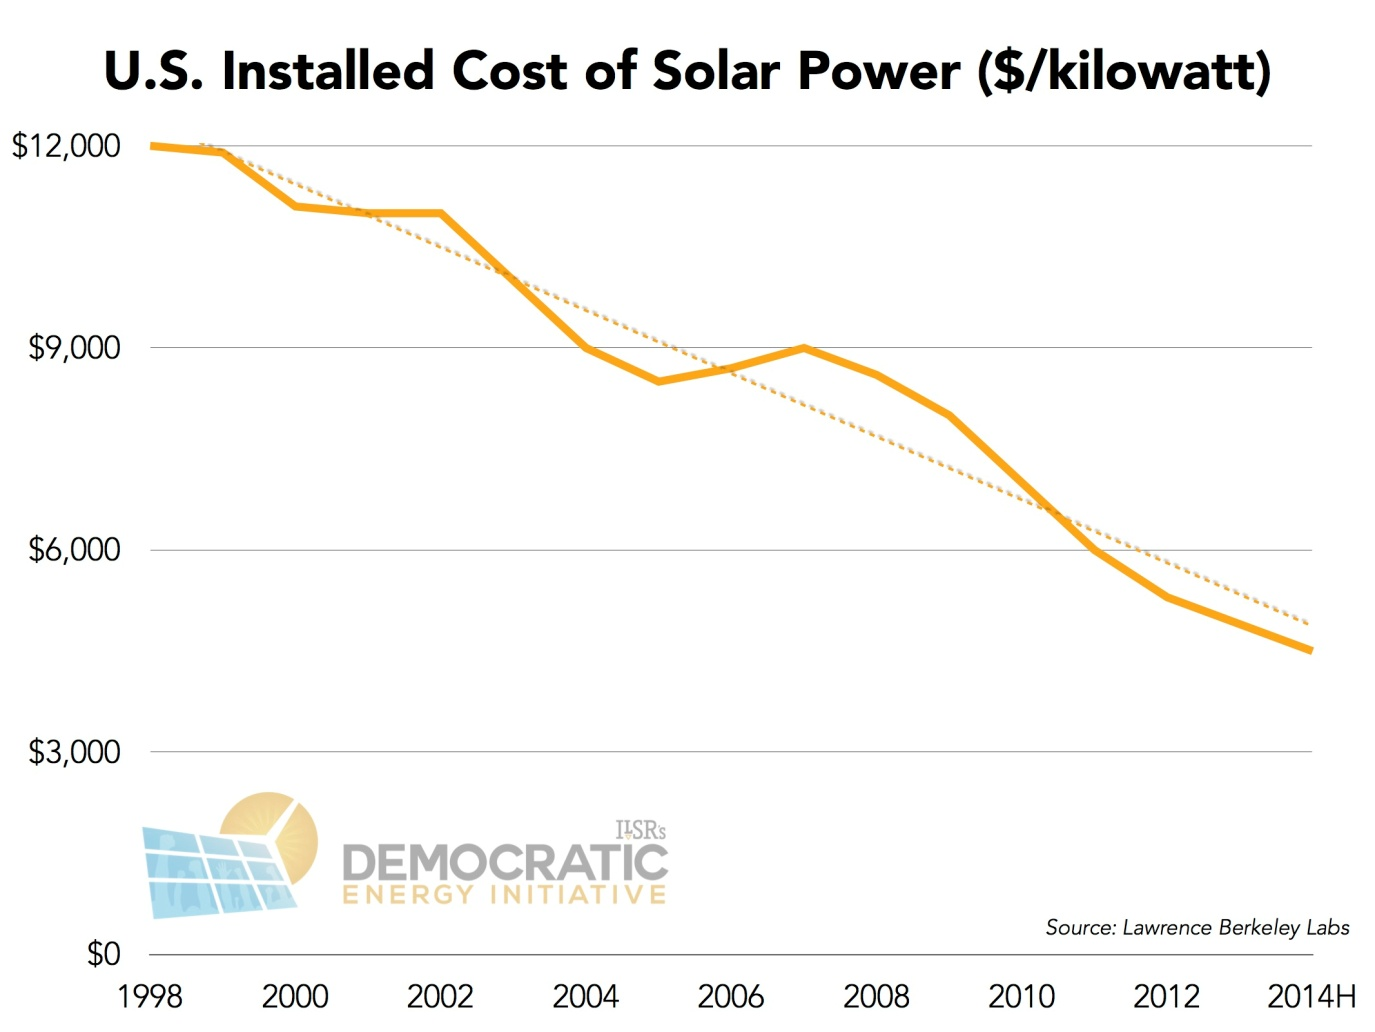 U.S. Installed cost of solar power